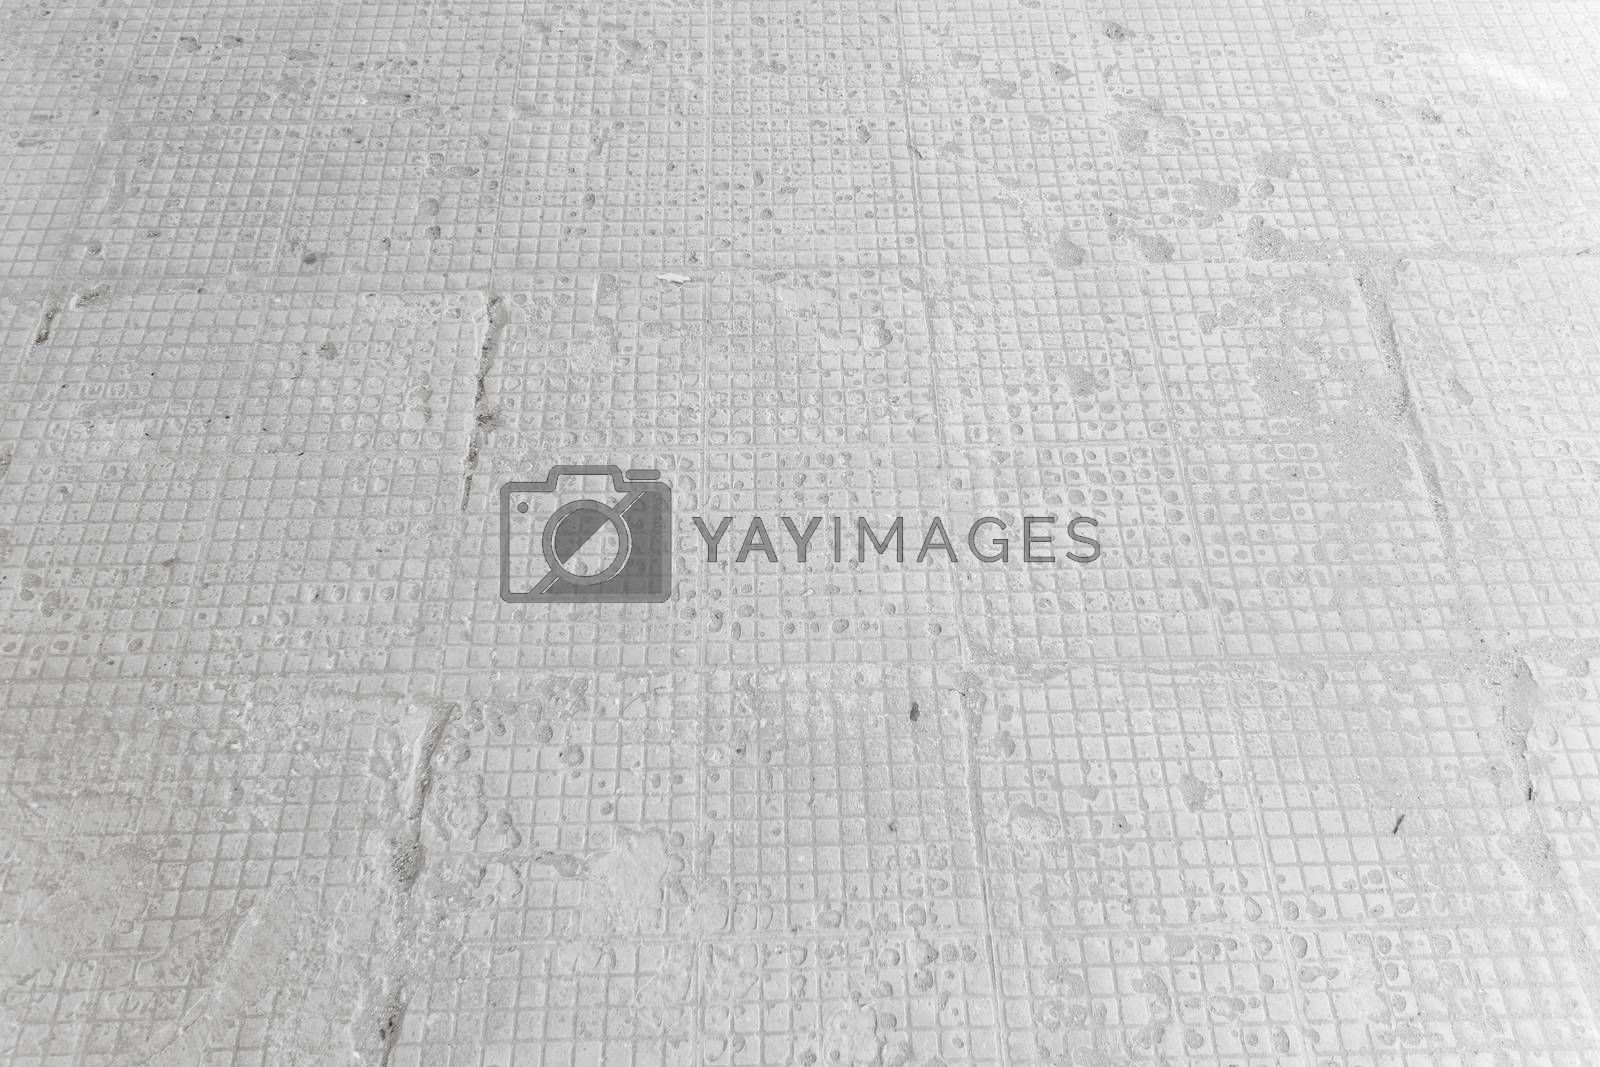 Royalty free image of Texture concrete  by kritsada1992